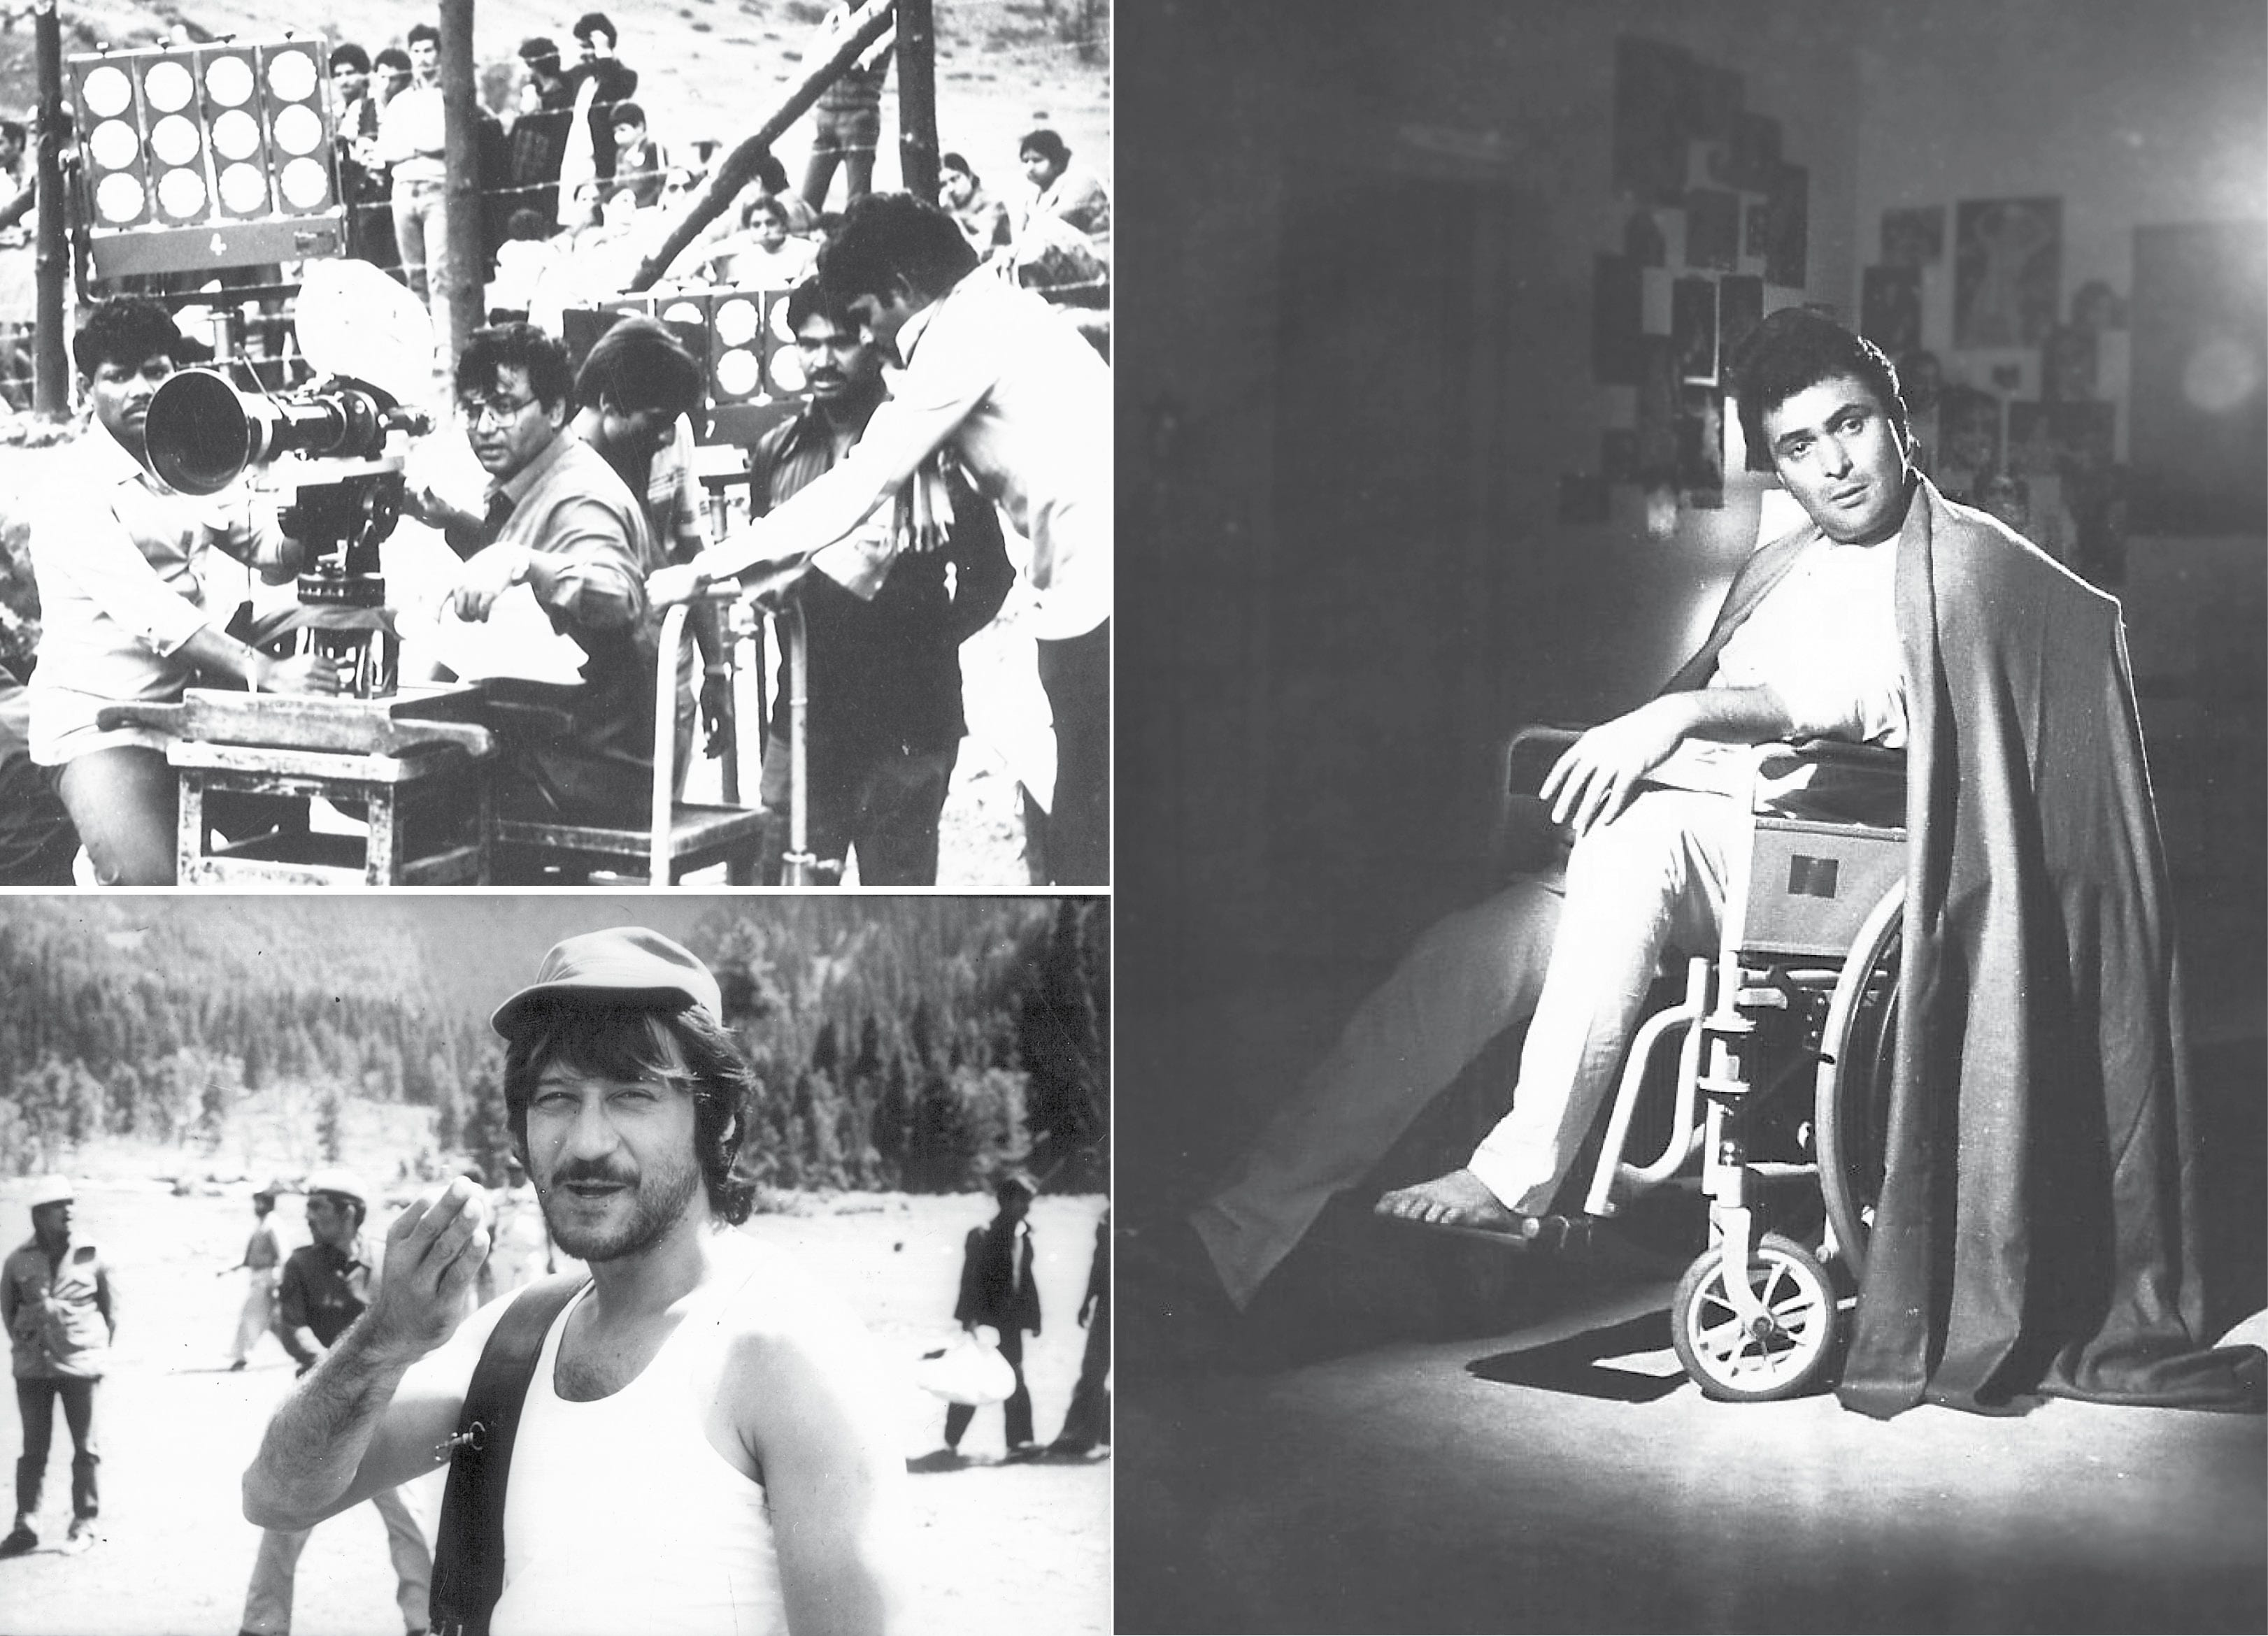 (Clockwise from top left) Subhash Ghai at the outdoor shoot of his movie; a shot of Rishi Kapoor clicked for his movie, Chandni; Jackie strikes a candid pose for the author on the sets of his movie in Pahalgam (Dinesh Raheja)